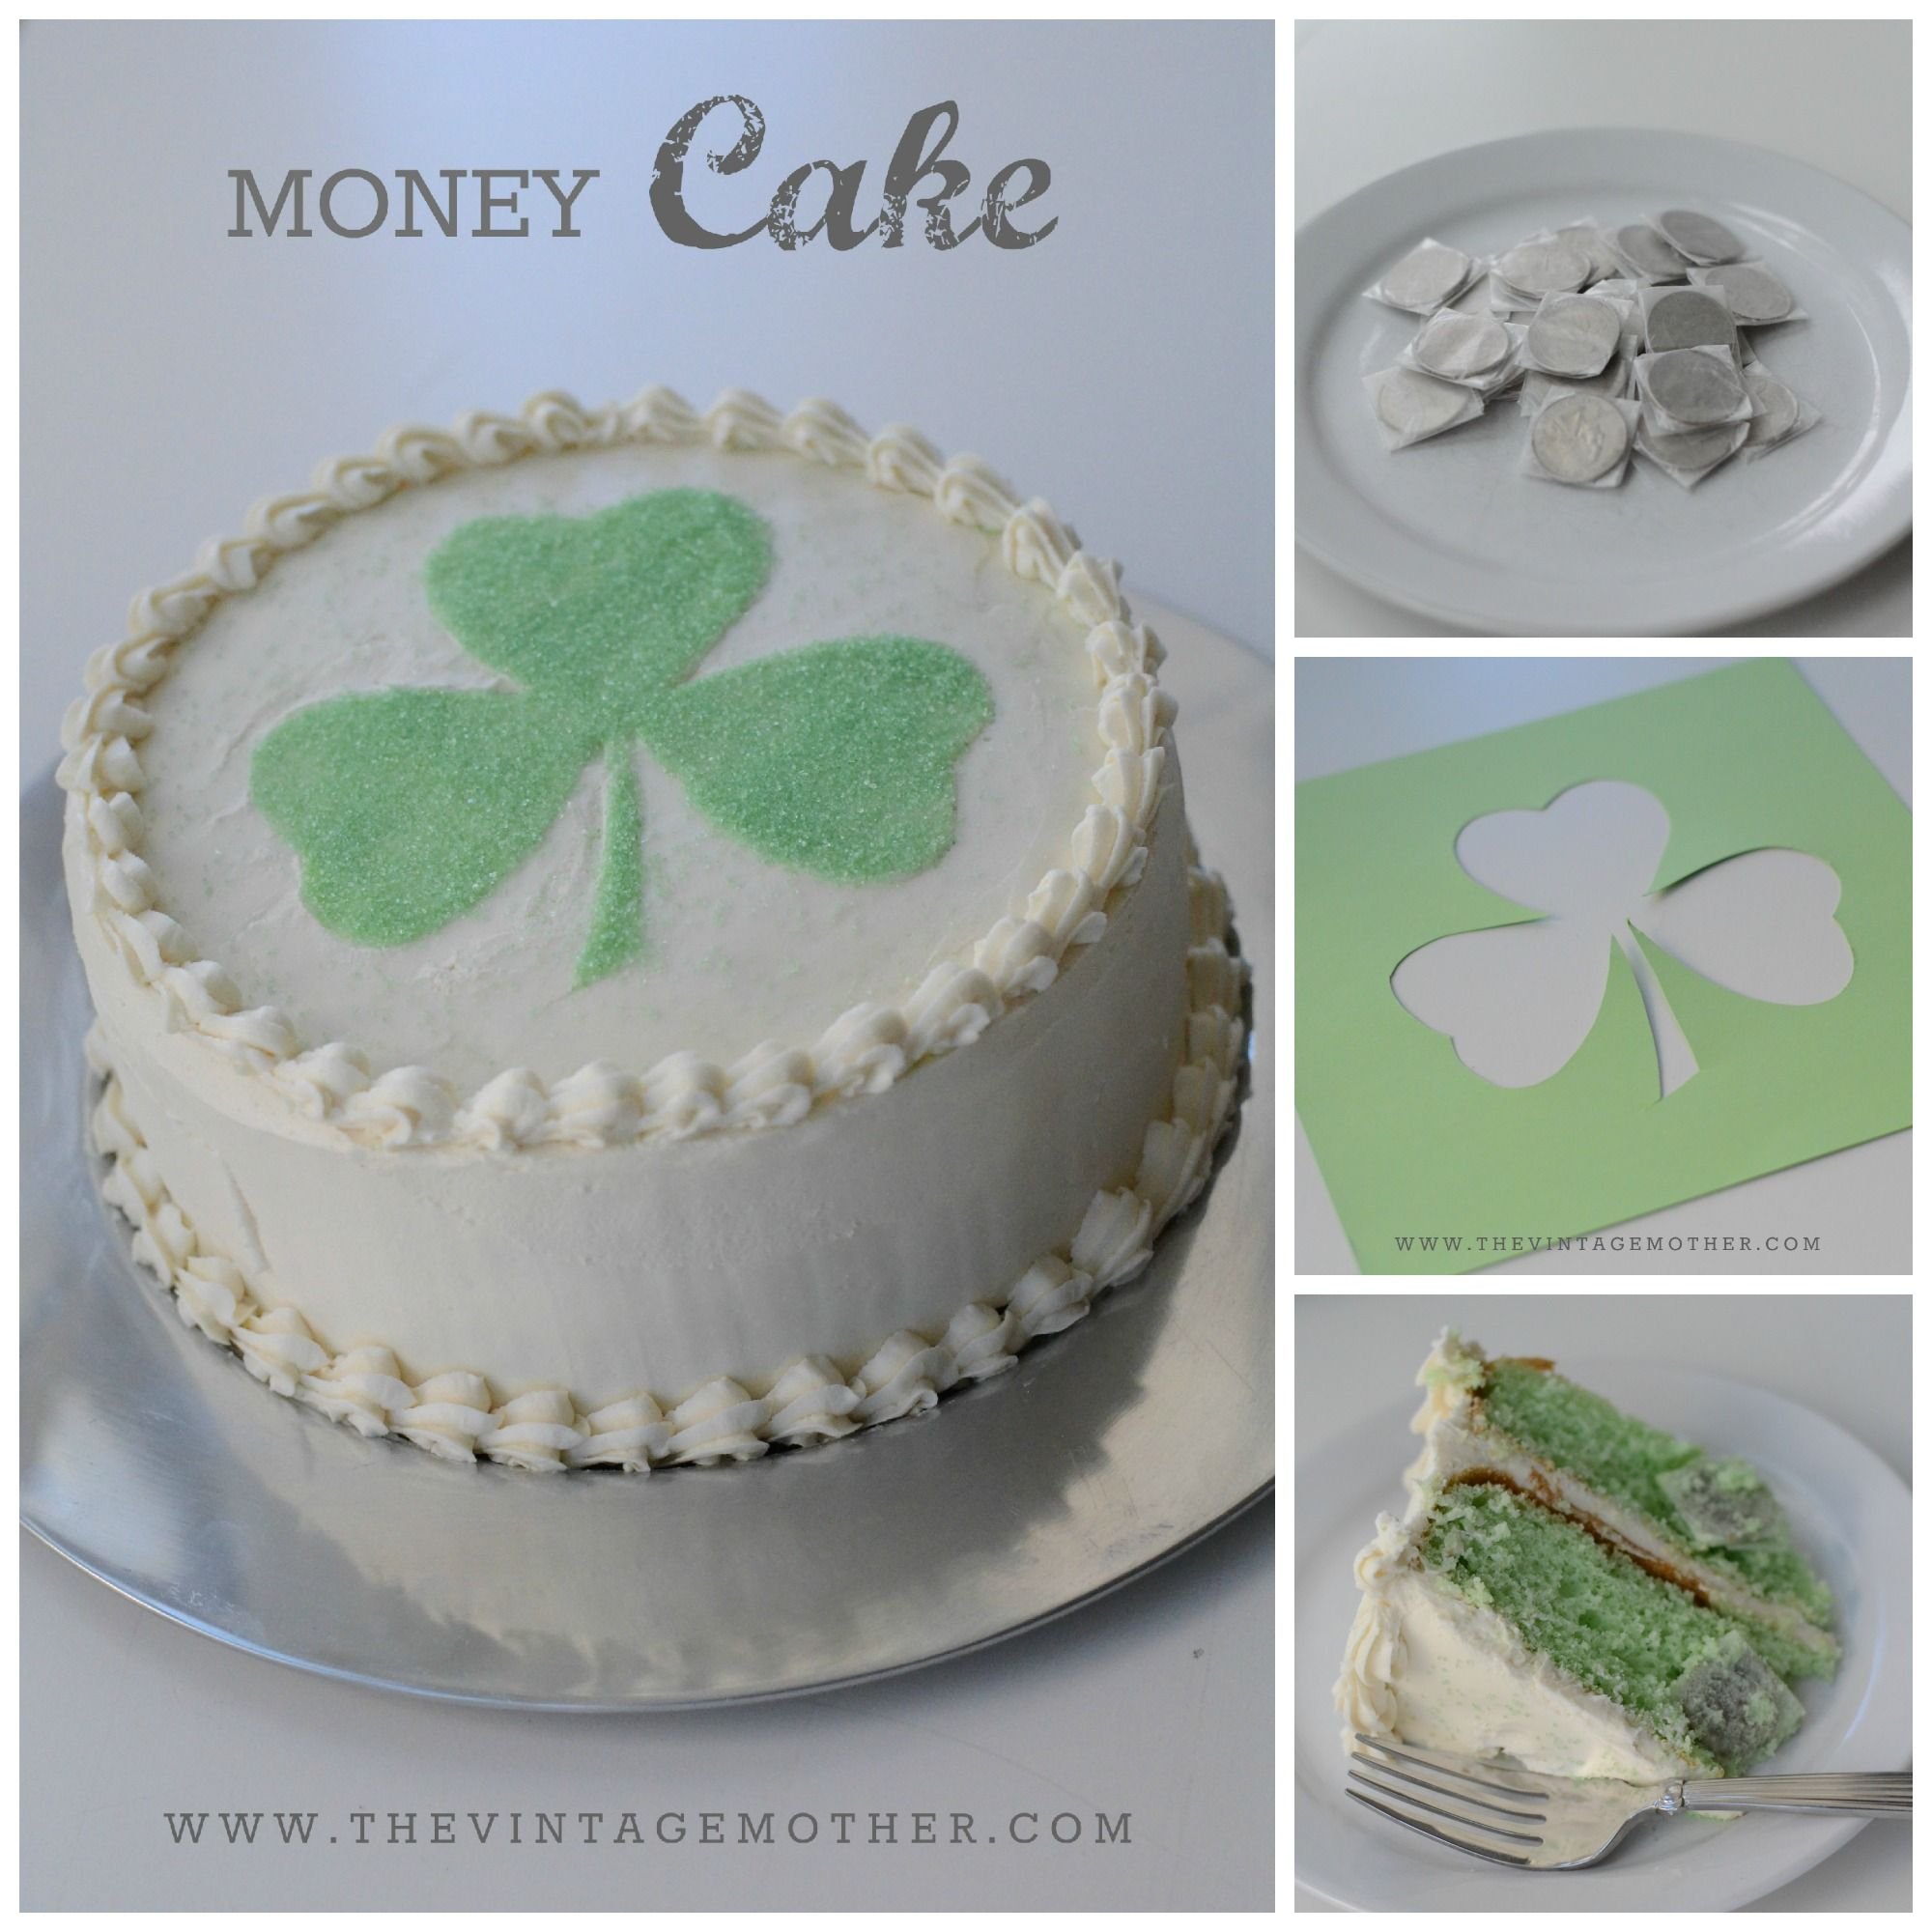 Money Cake From Thevintagemother Love This Fun Idea For St